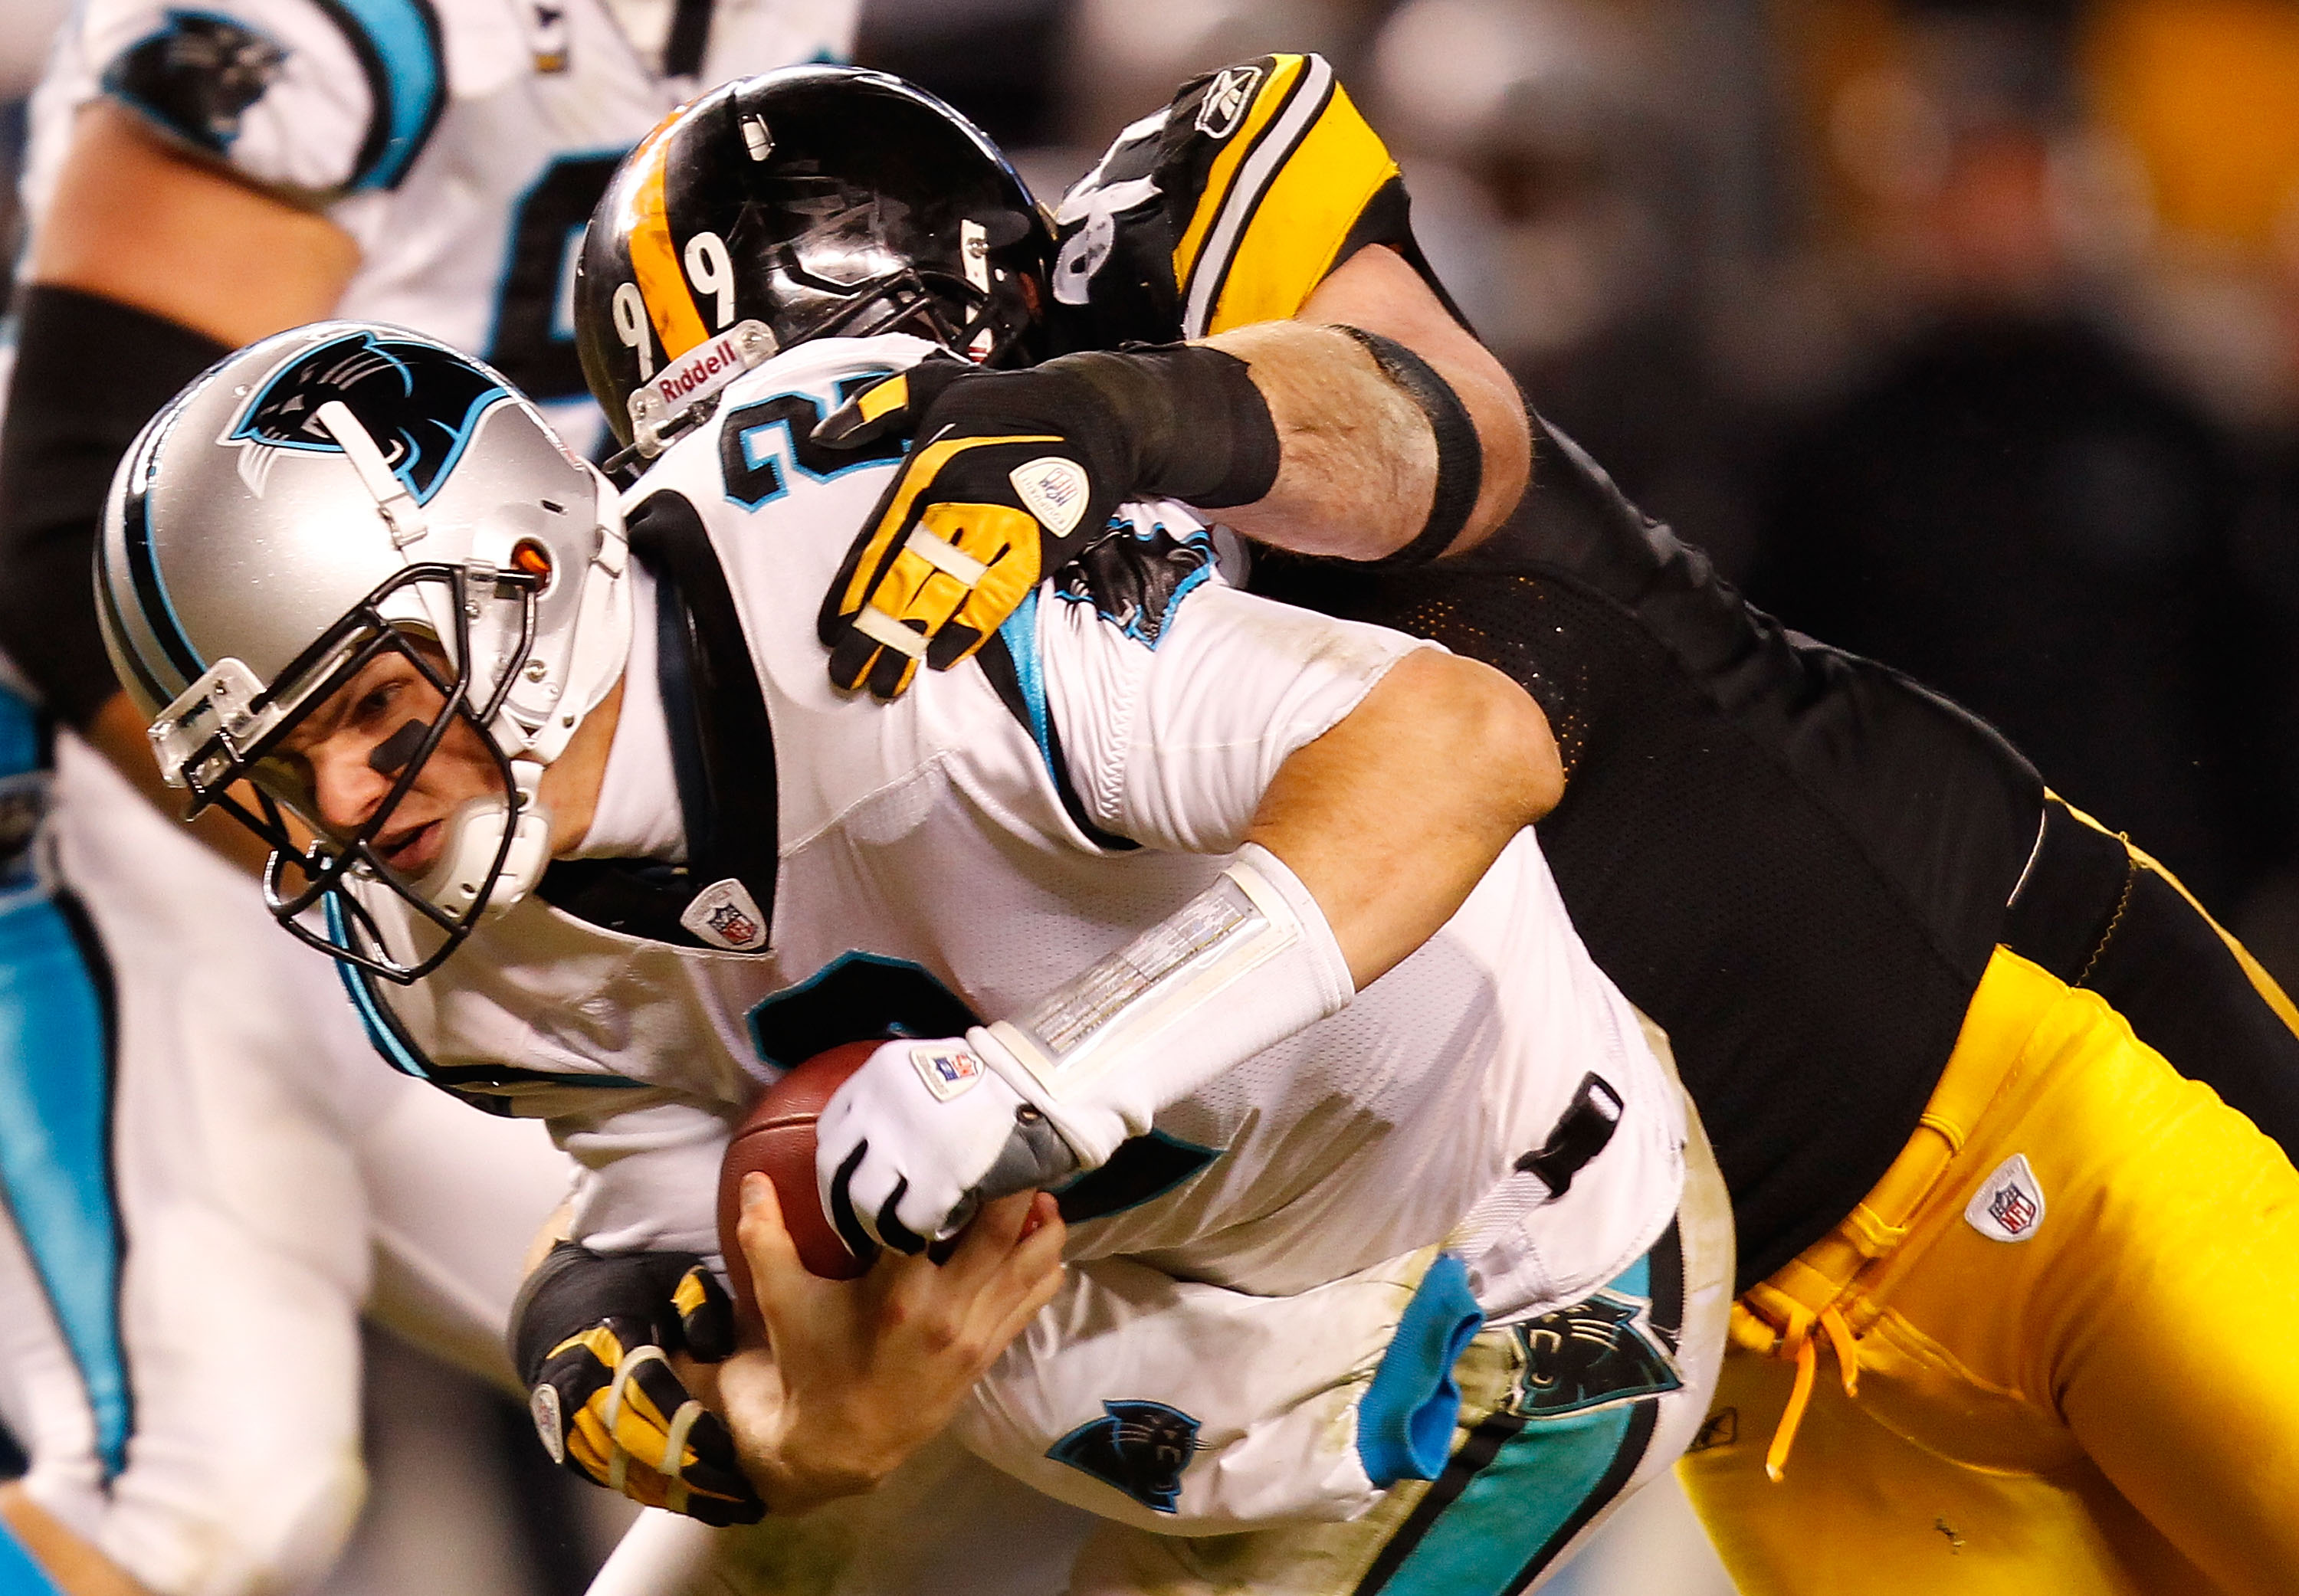 PITTSBURGH - DECEMBER 23:  Jimmy Clausen #2 of the Carolina Panthers is sacked by Brett Keisel #99 of the Pittsburgh Steelers during the game on December 23, 2010 at Heinz Field in Pittsburgh, Pennsylvania.  (Photo by Jared Wickerham/Getty Images)